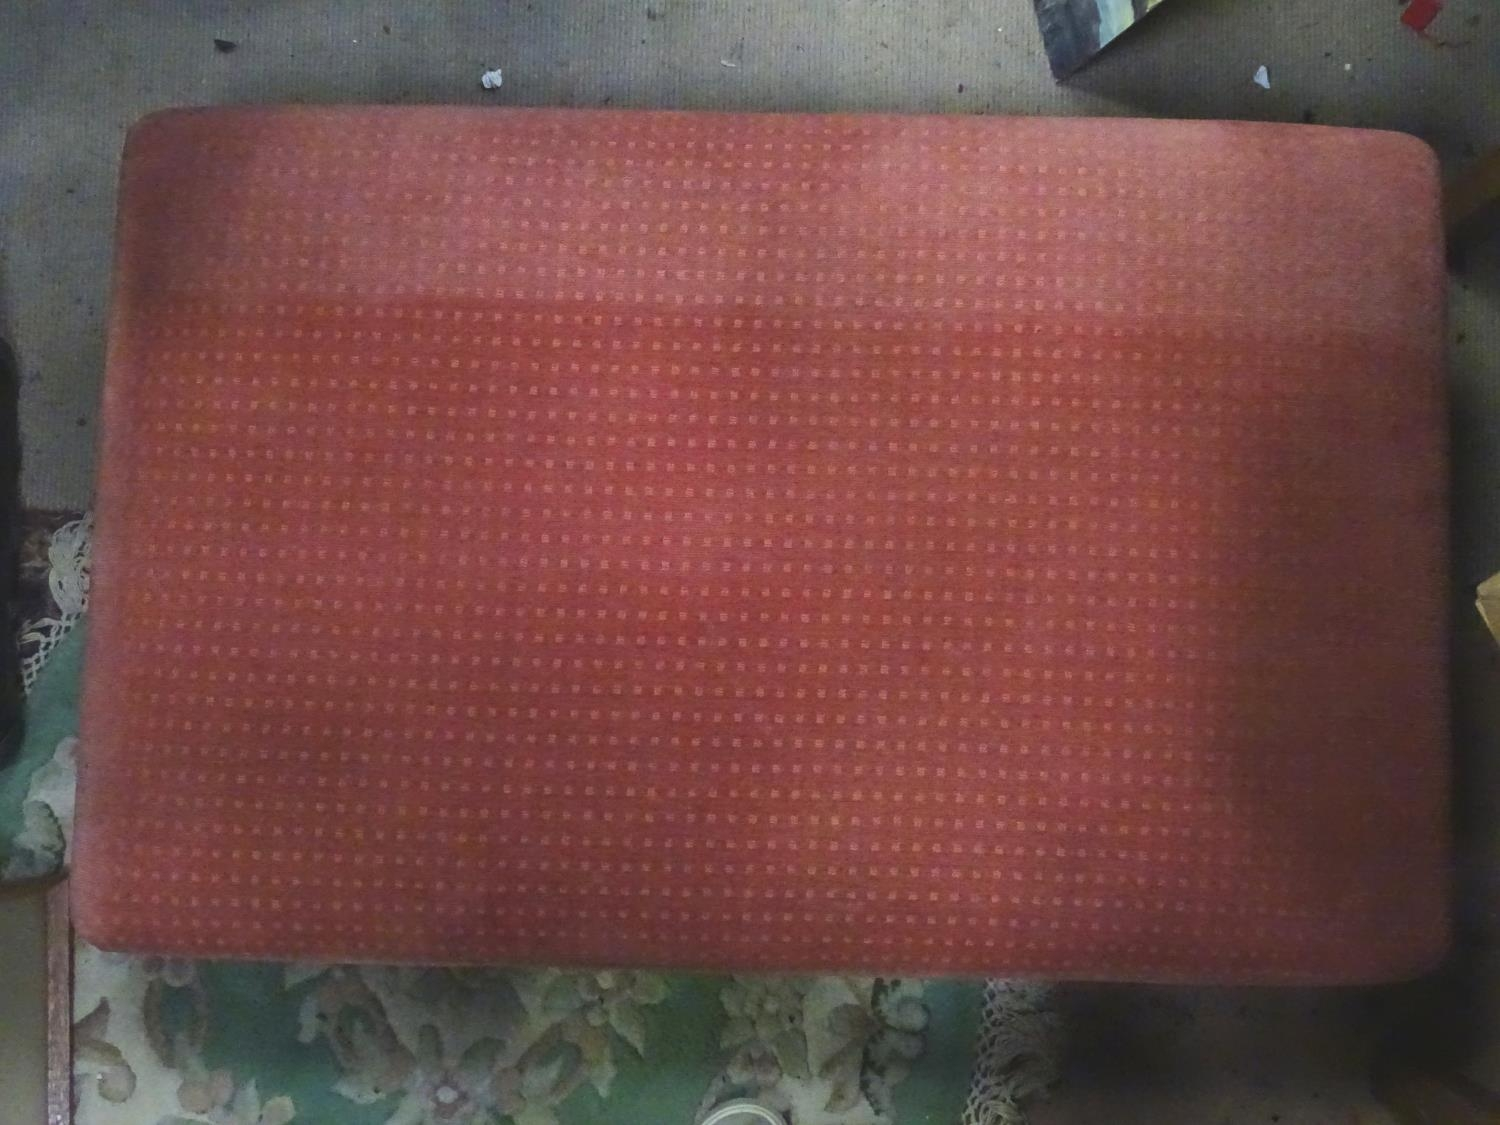 A large upholstered footstool on castors Please Note - we do not make reference to the condition - Image 4 of 6